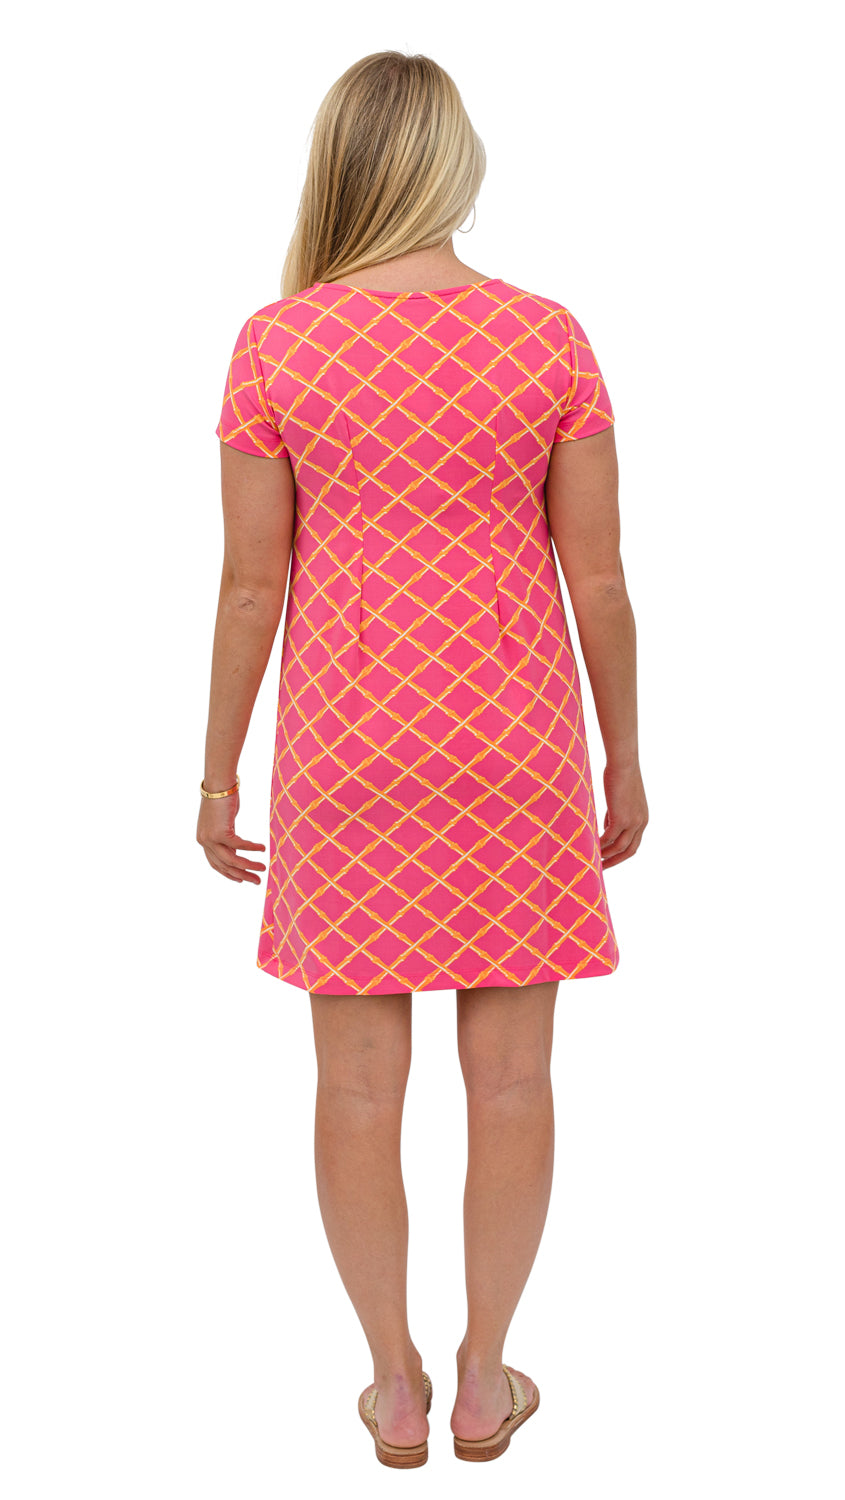 Marina Dress - Pink/Orange Bamboo Lattice